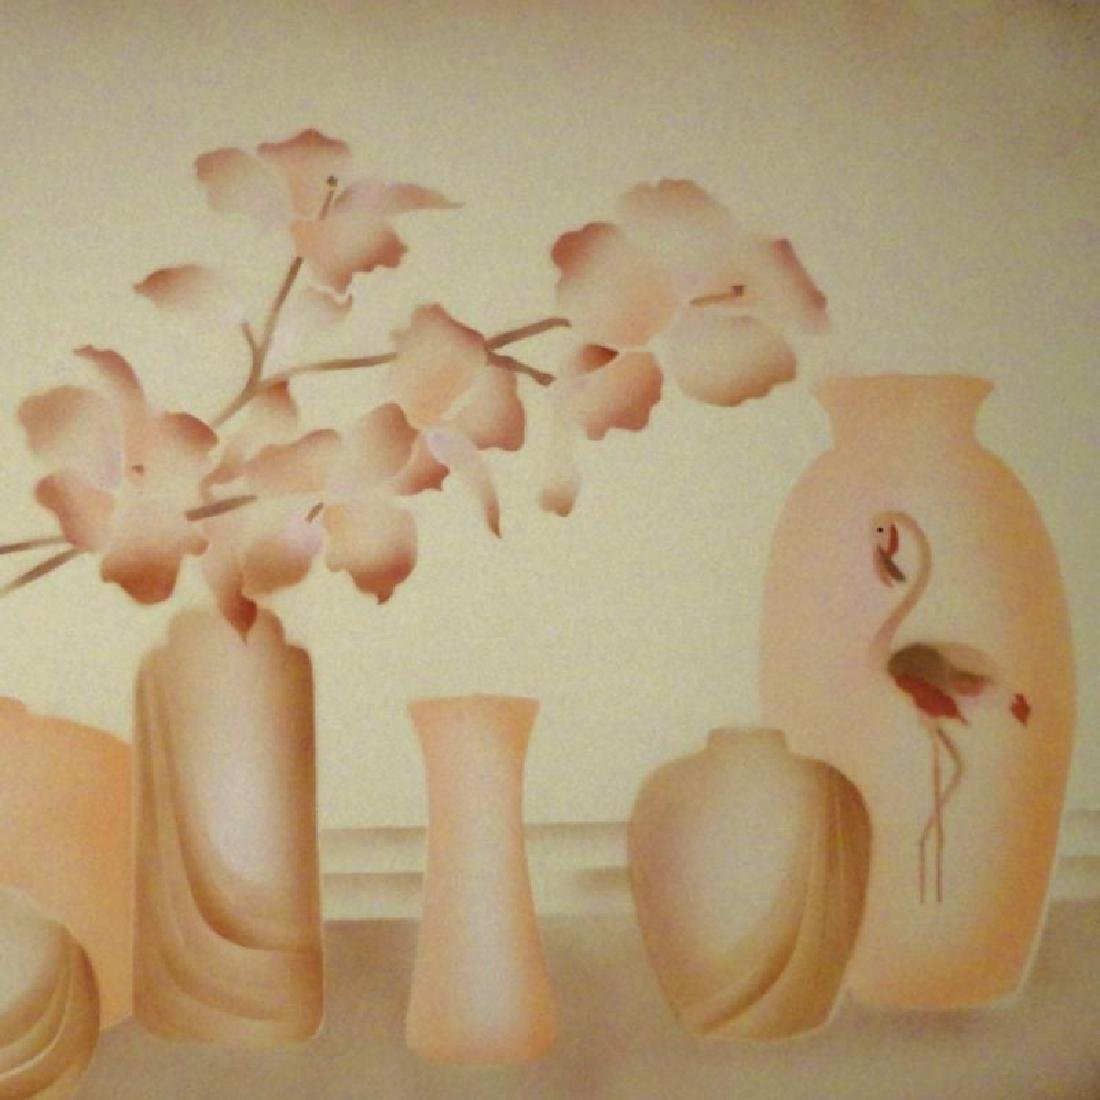 Vase Pastel Colored Limited Edition Litho - 3